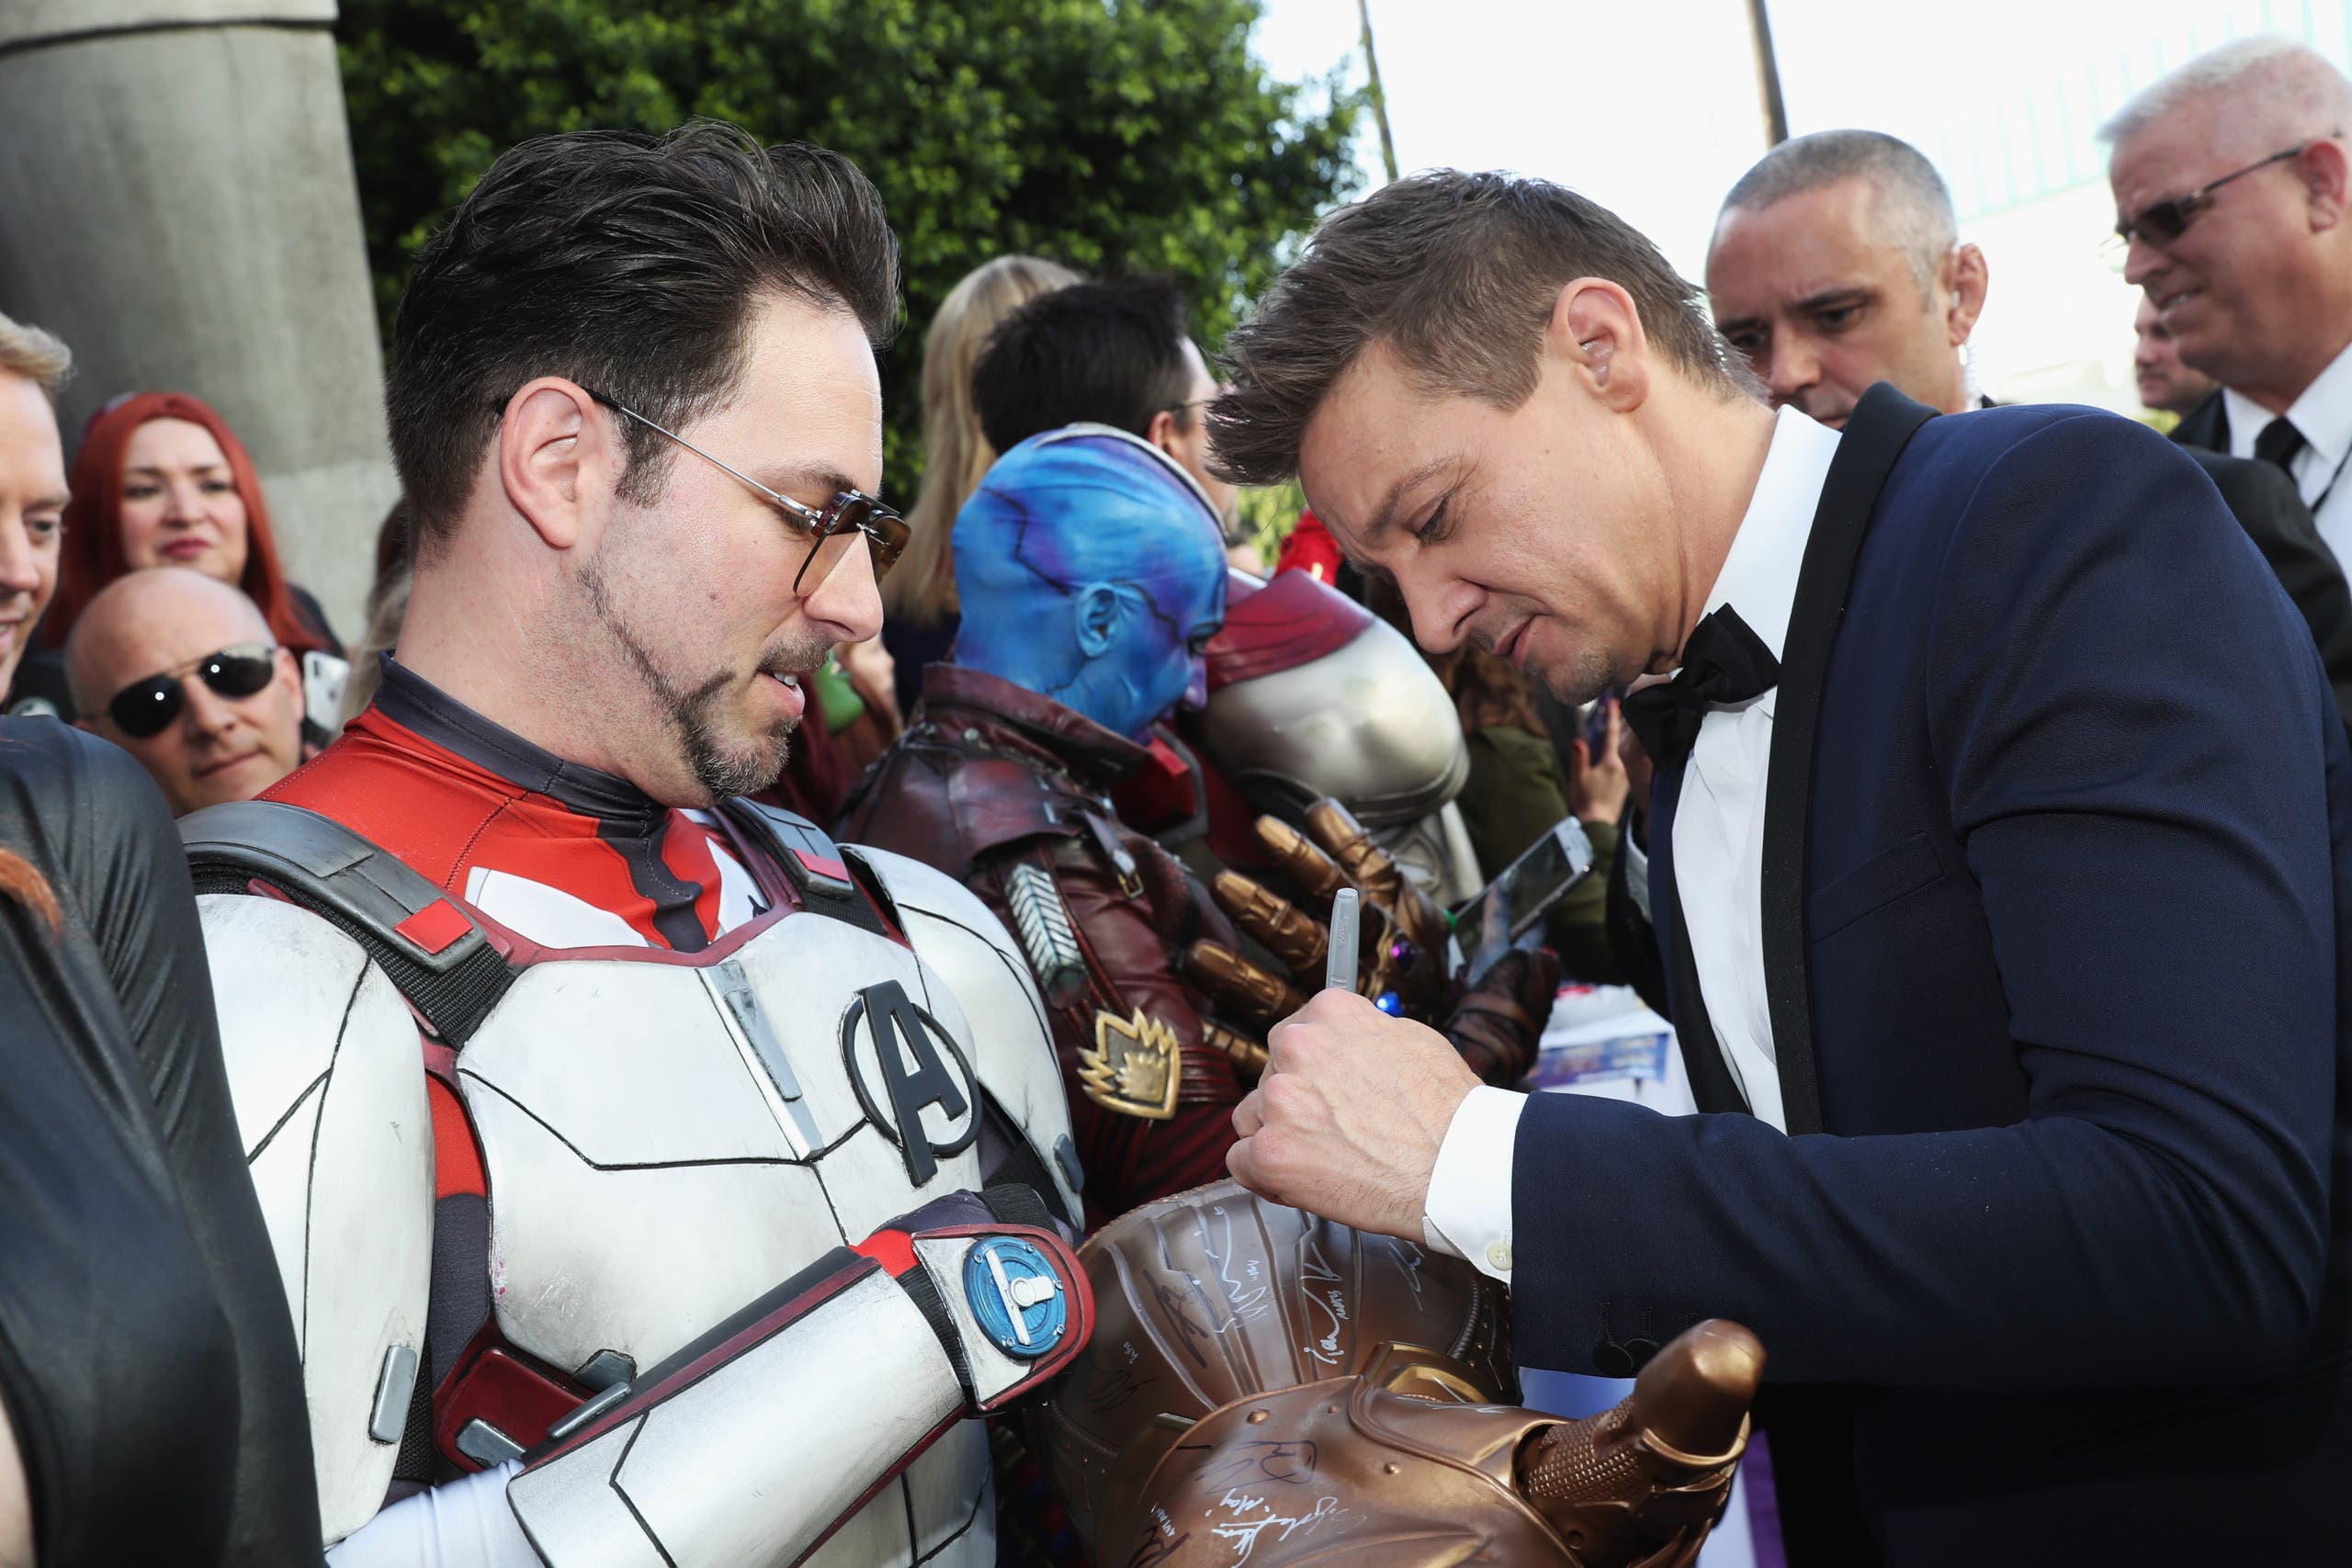 Jeremy Renner signs a fan's costume at the Avengers: Endgame premiere. (AFP)